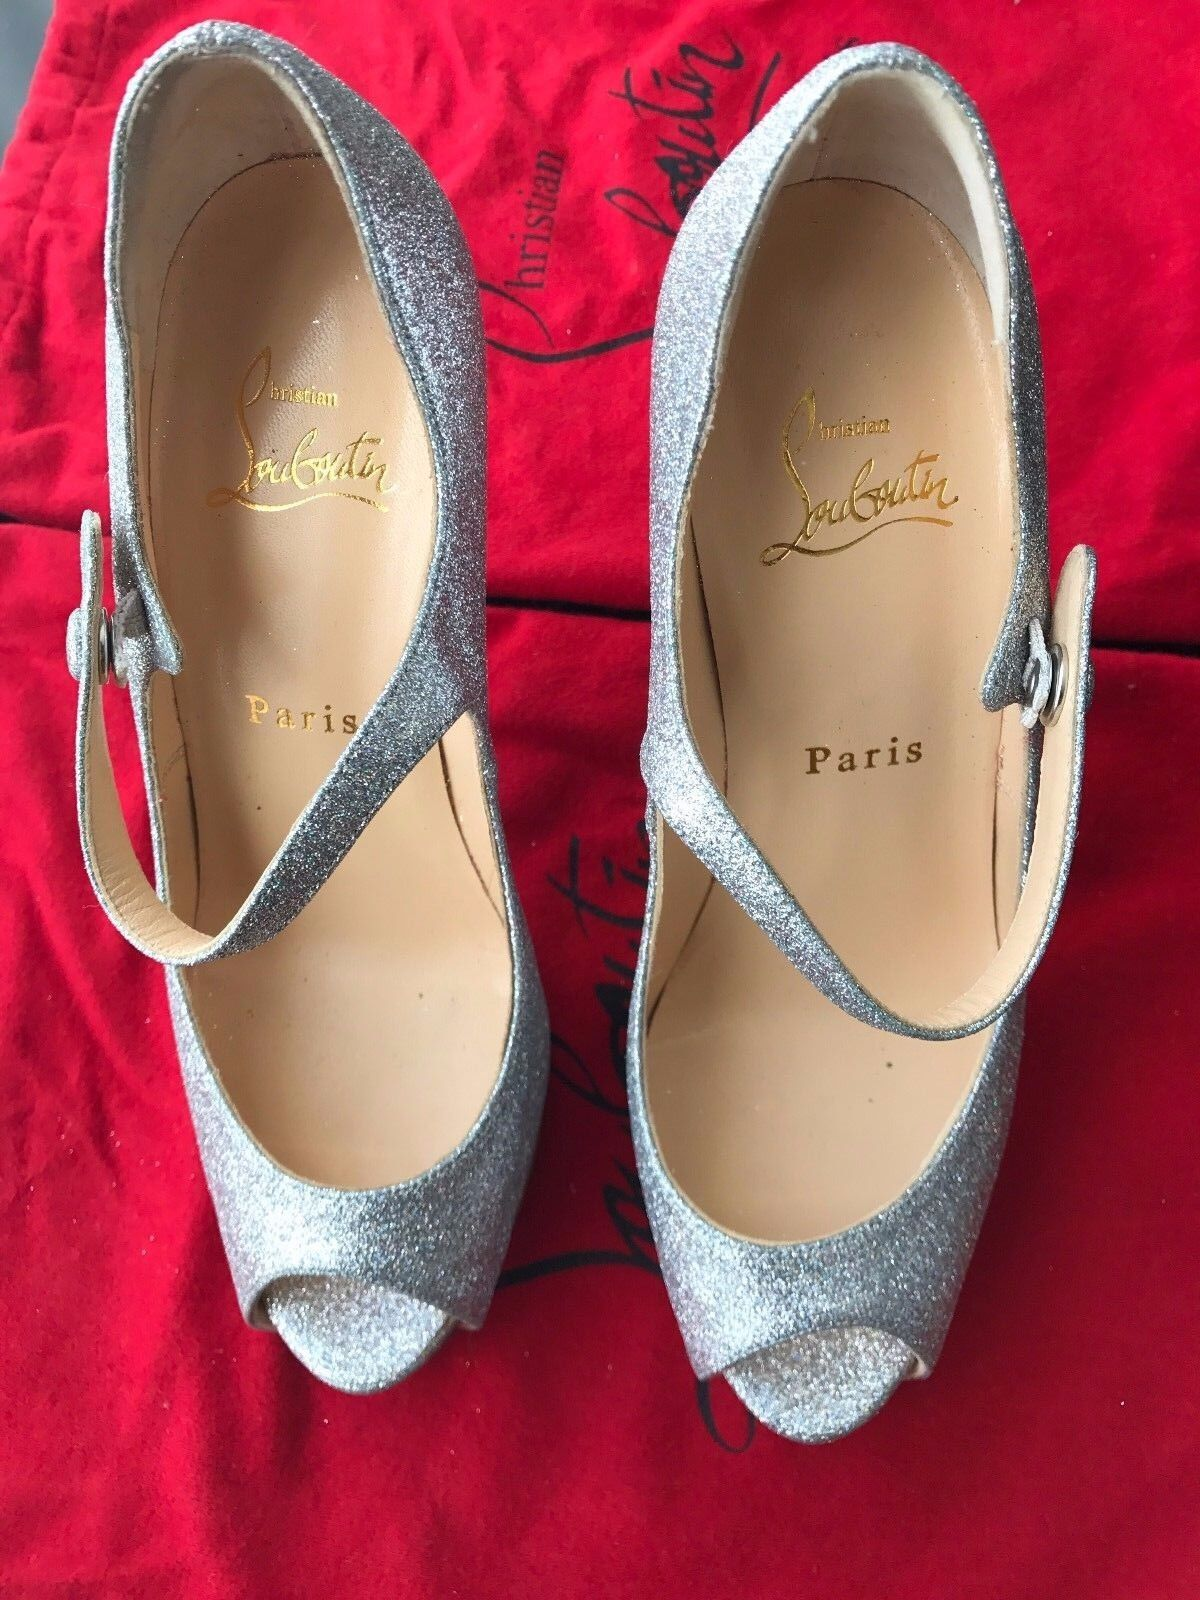 Christian Louboutin Louboutin Louboutin Jane Vendome 120 size 36 Brand New    Perfect wedding shoe a77c5a